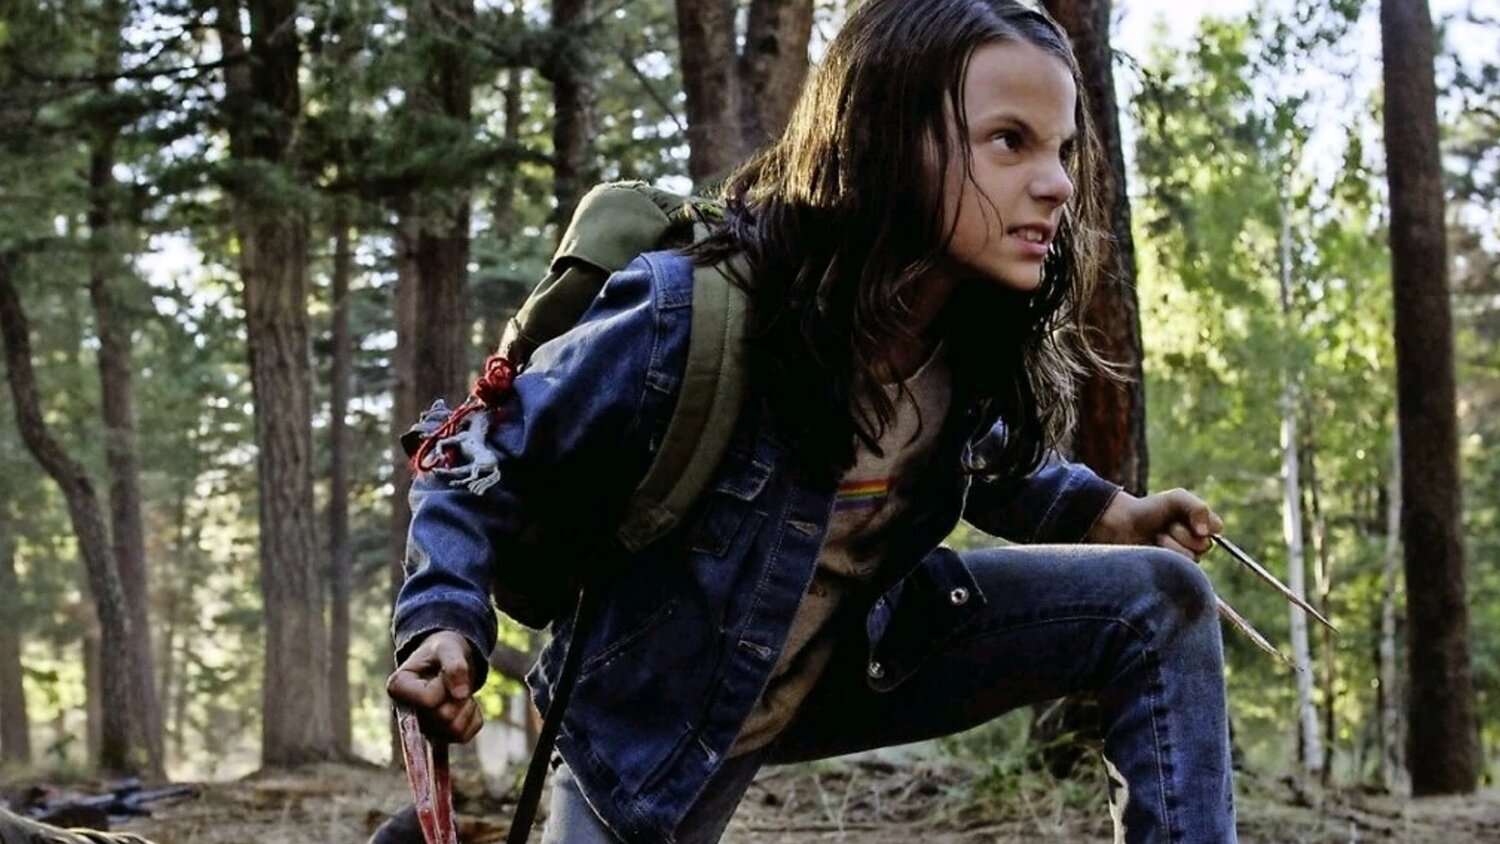 LOGAN Star Dafne Keen Wants to Play X-23 Again for Marvel Studios